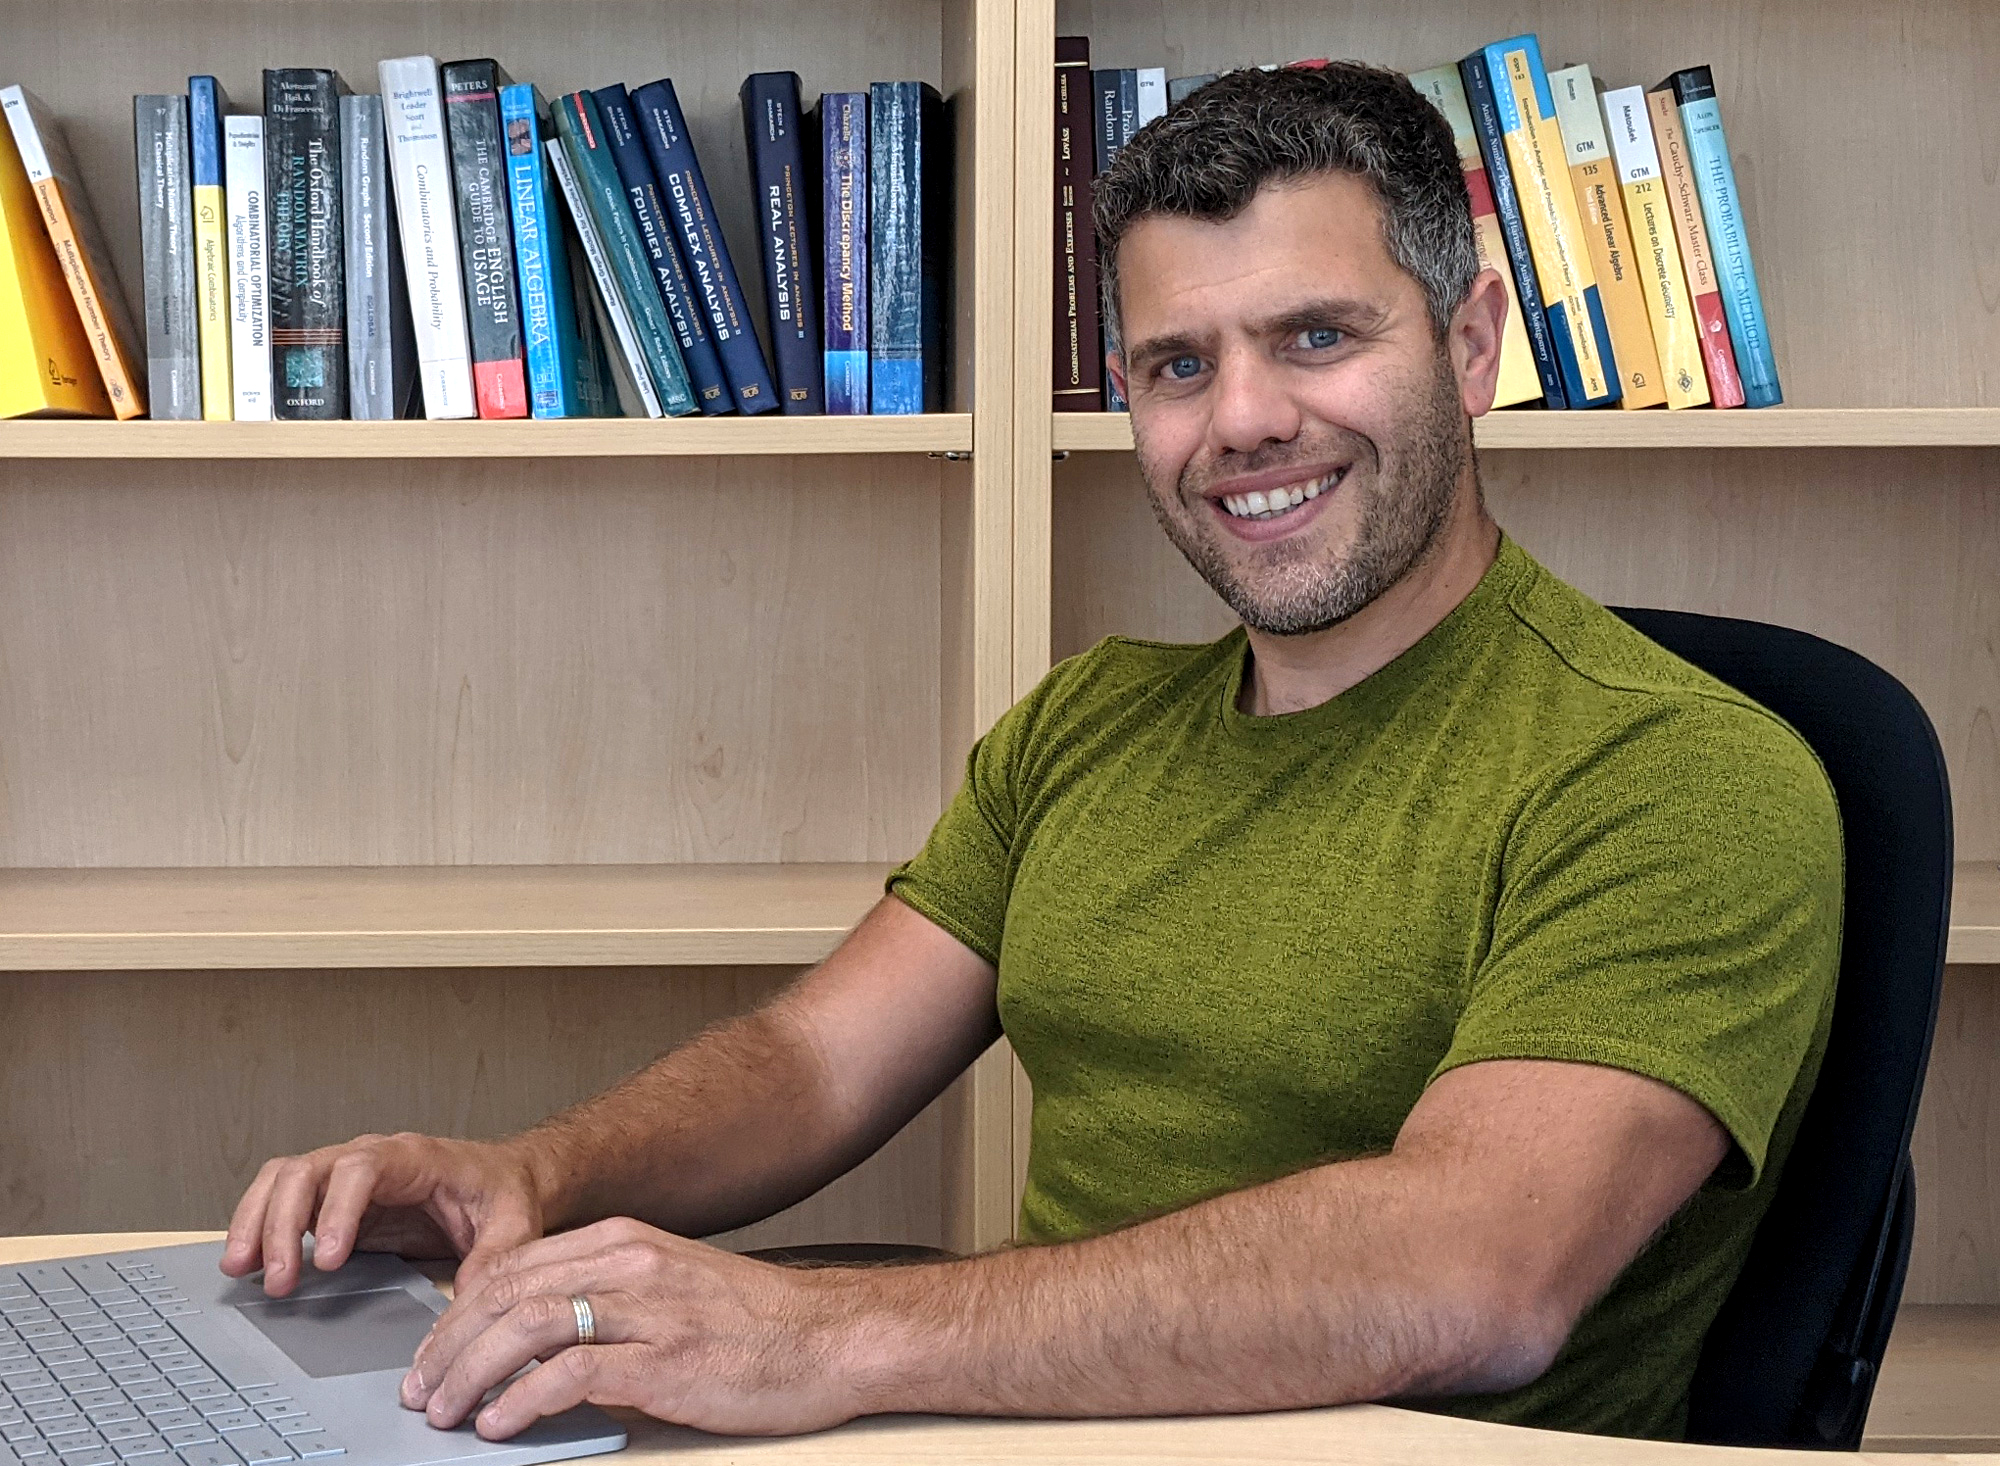 An outdoor photo of Michael Krivelevich in a purple shirt; a photo of Asaf Ferber in a green shirt sitting at a laptop